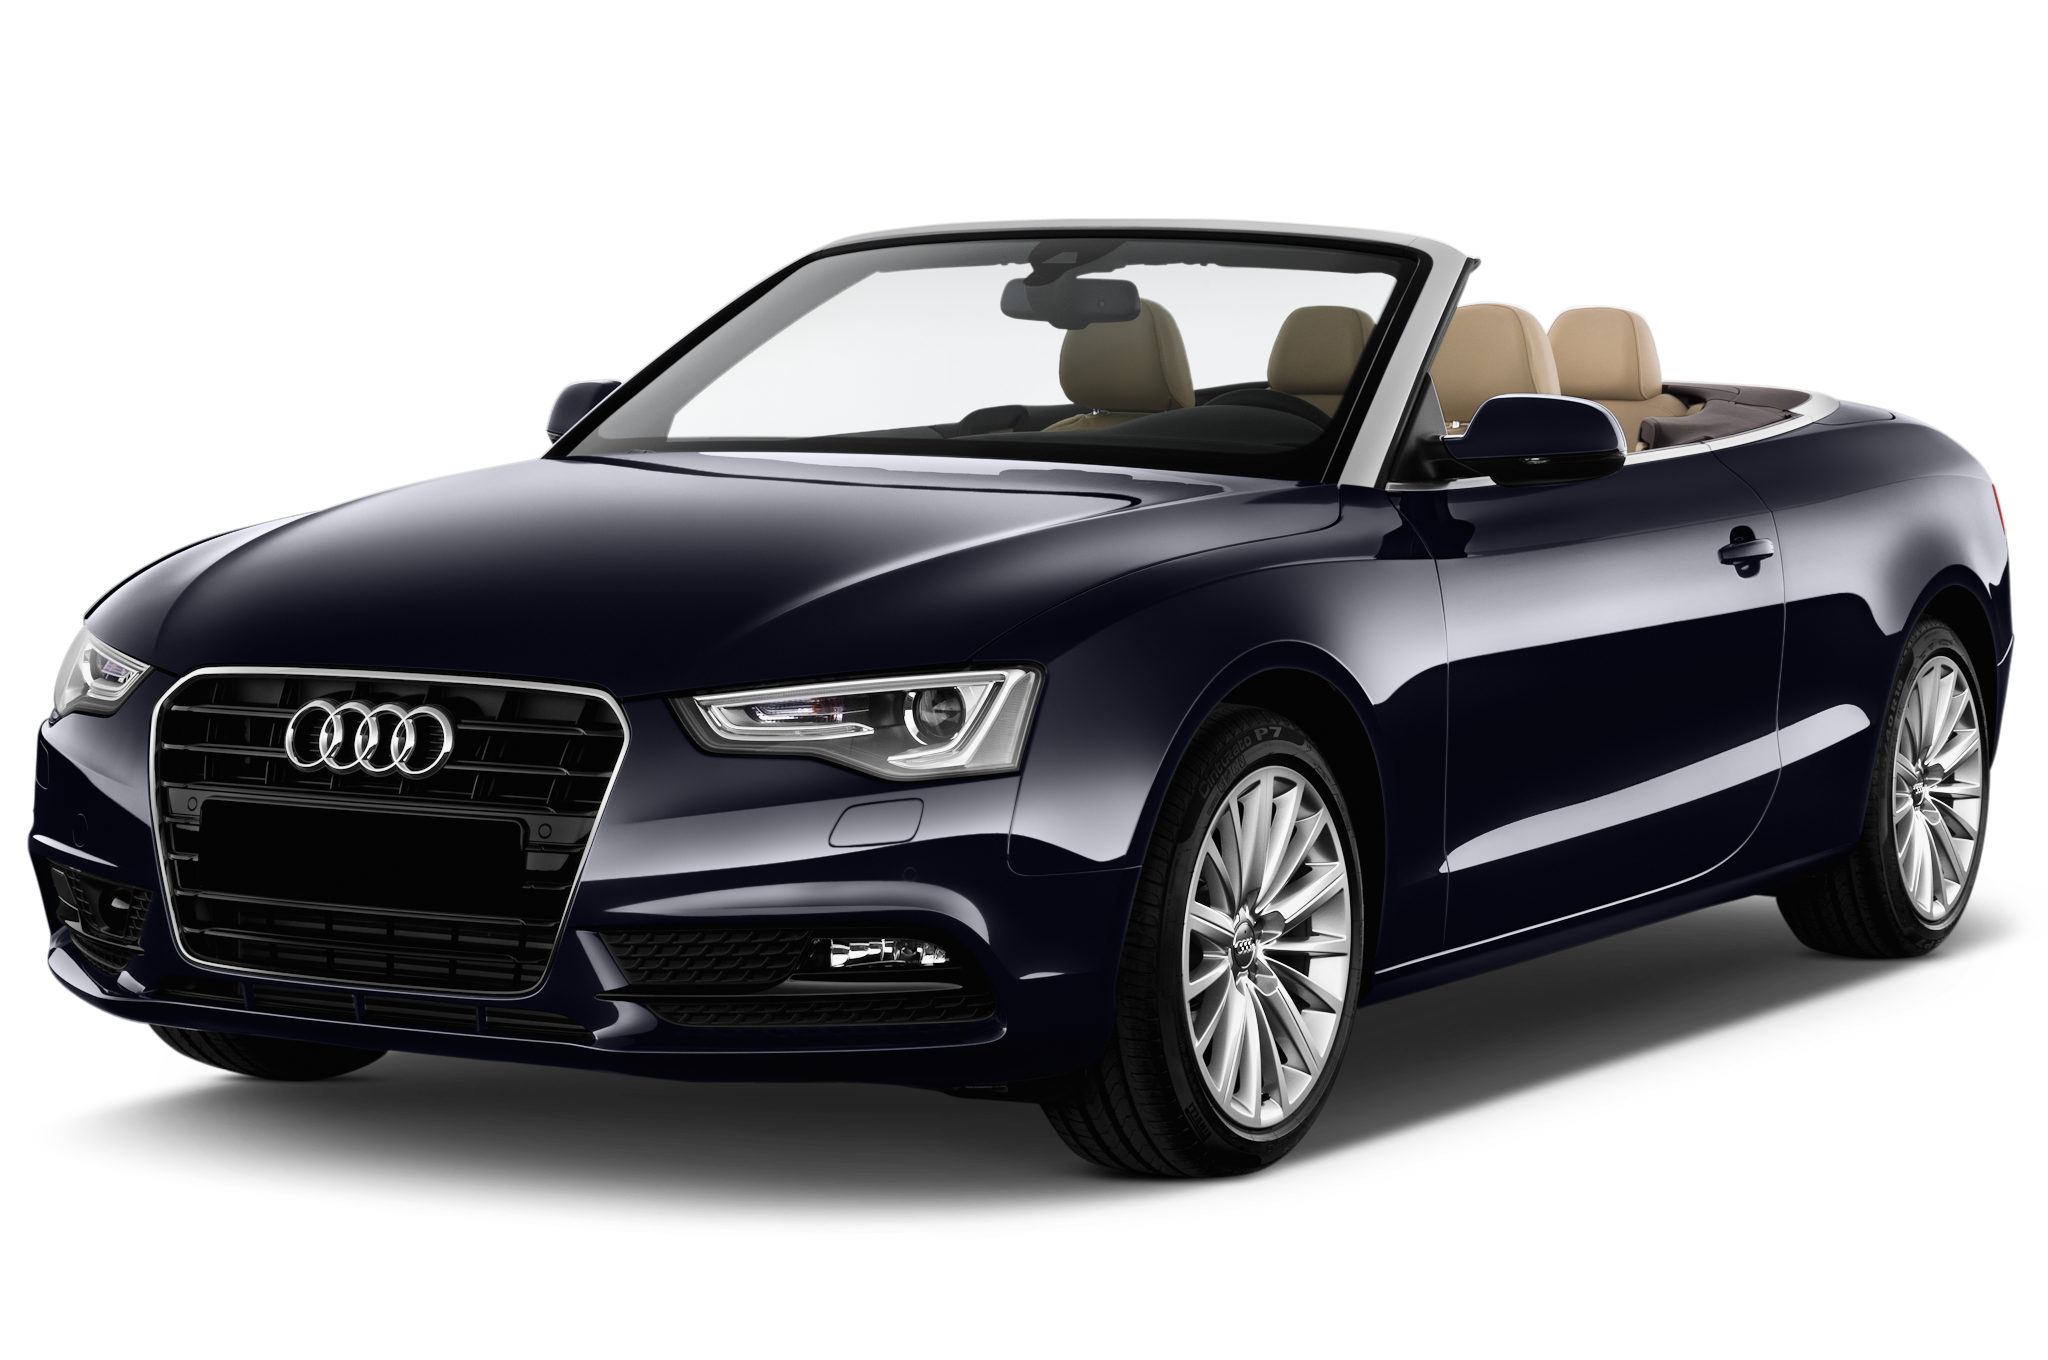 images audi wallpaper background hd convertible